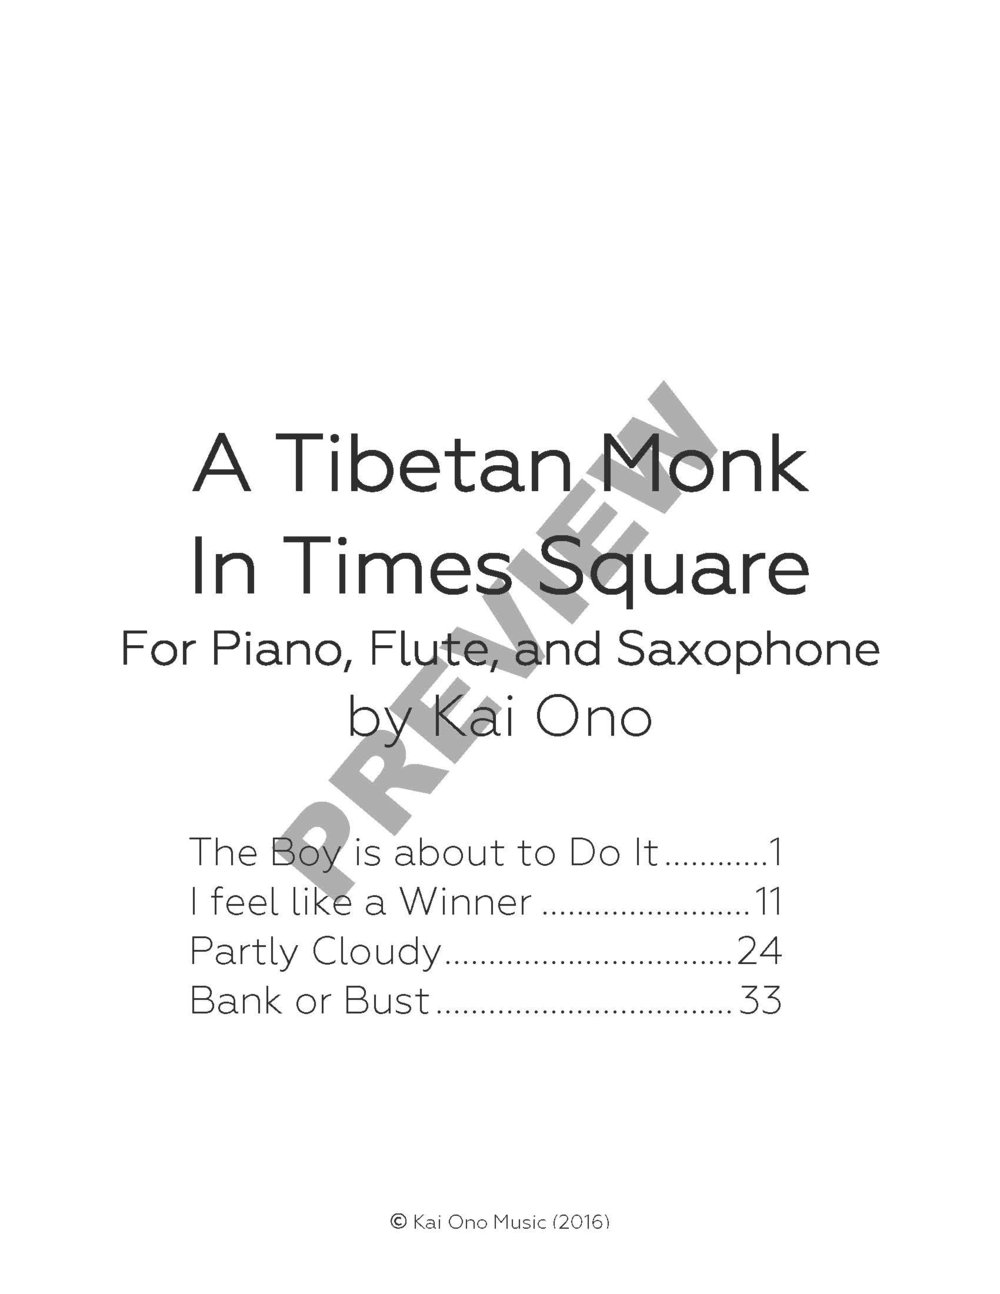 A Tibetan Monk in Times Square_Page_01.jpg